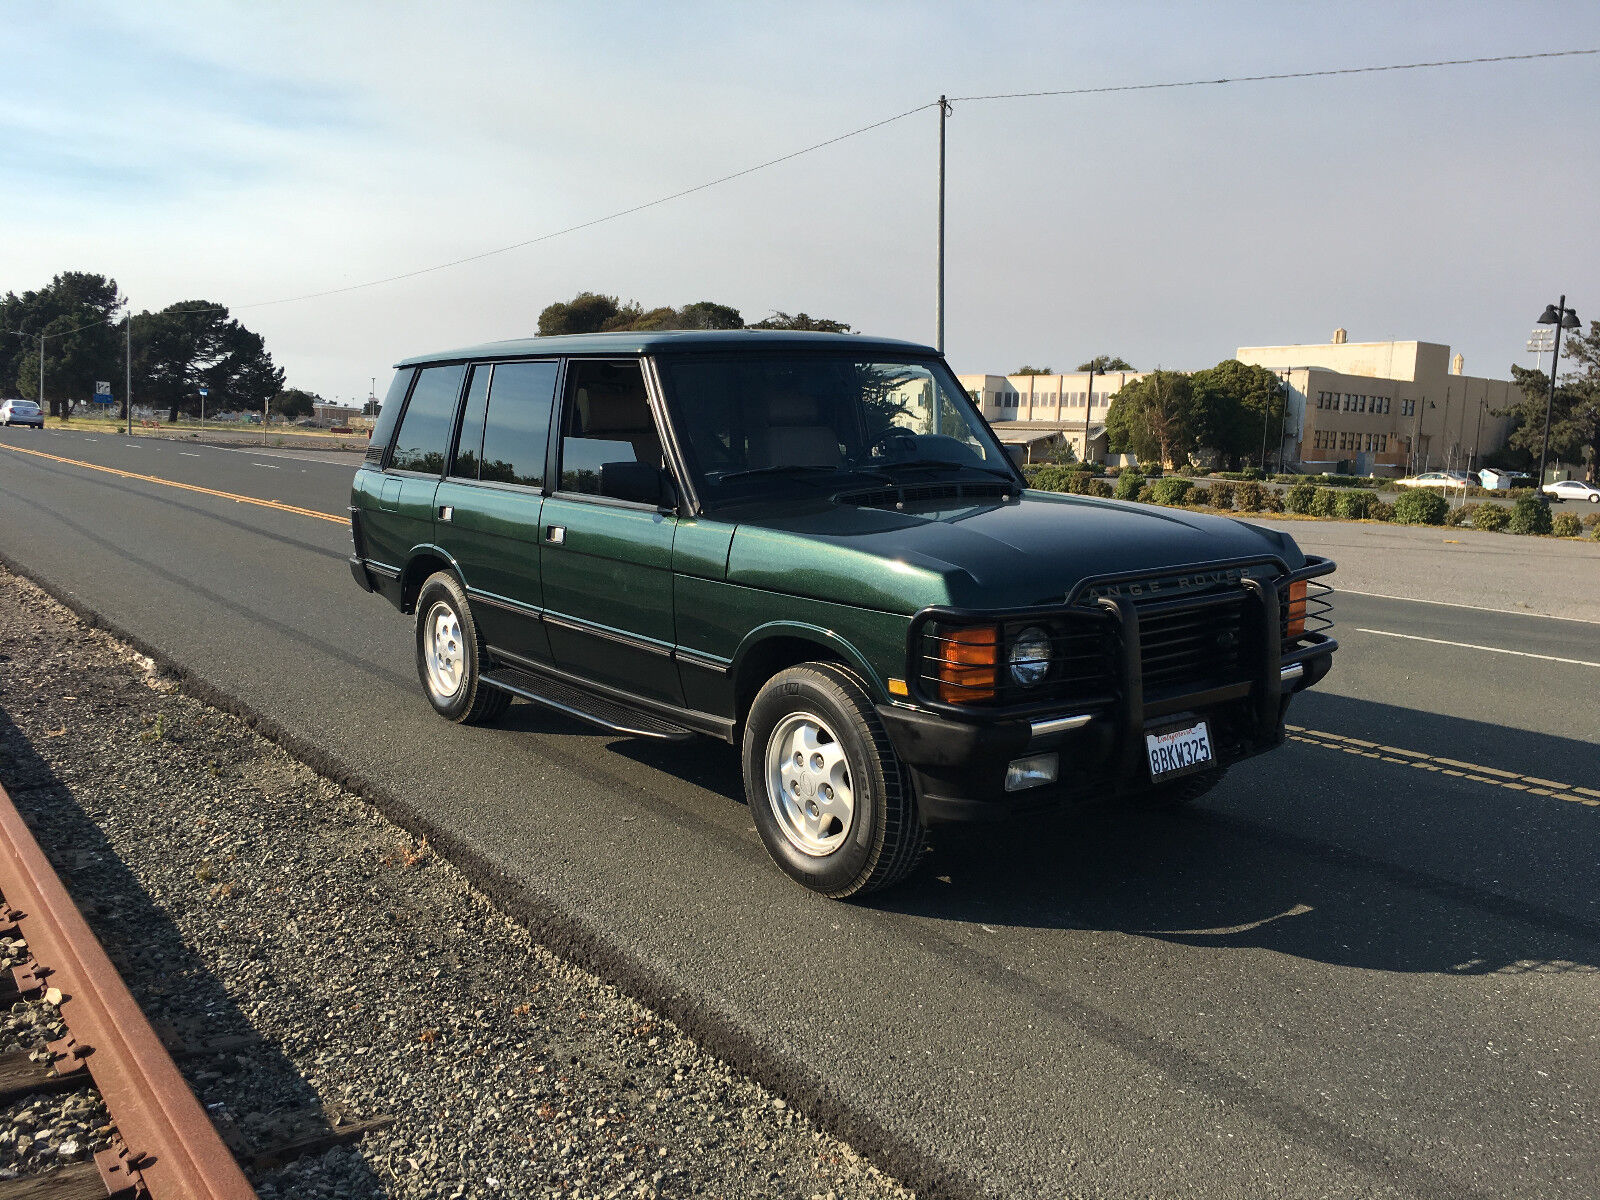 1995 Land Rover Range Rover County LWB 1995 Land Rover Range Rover County LWB Classic